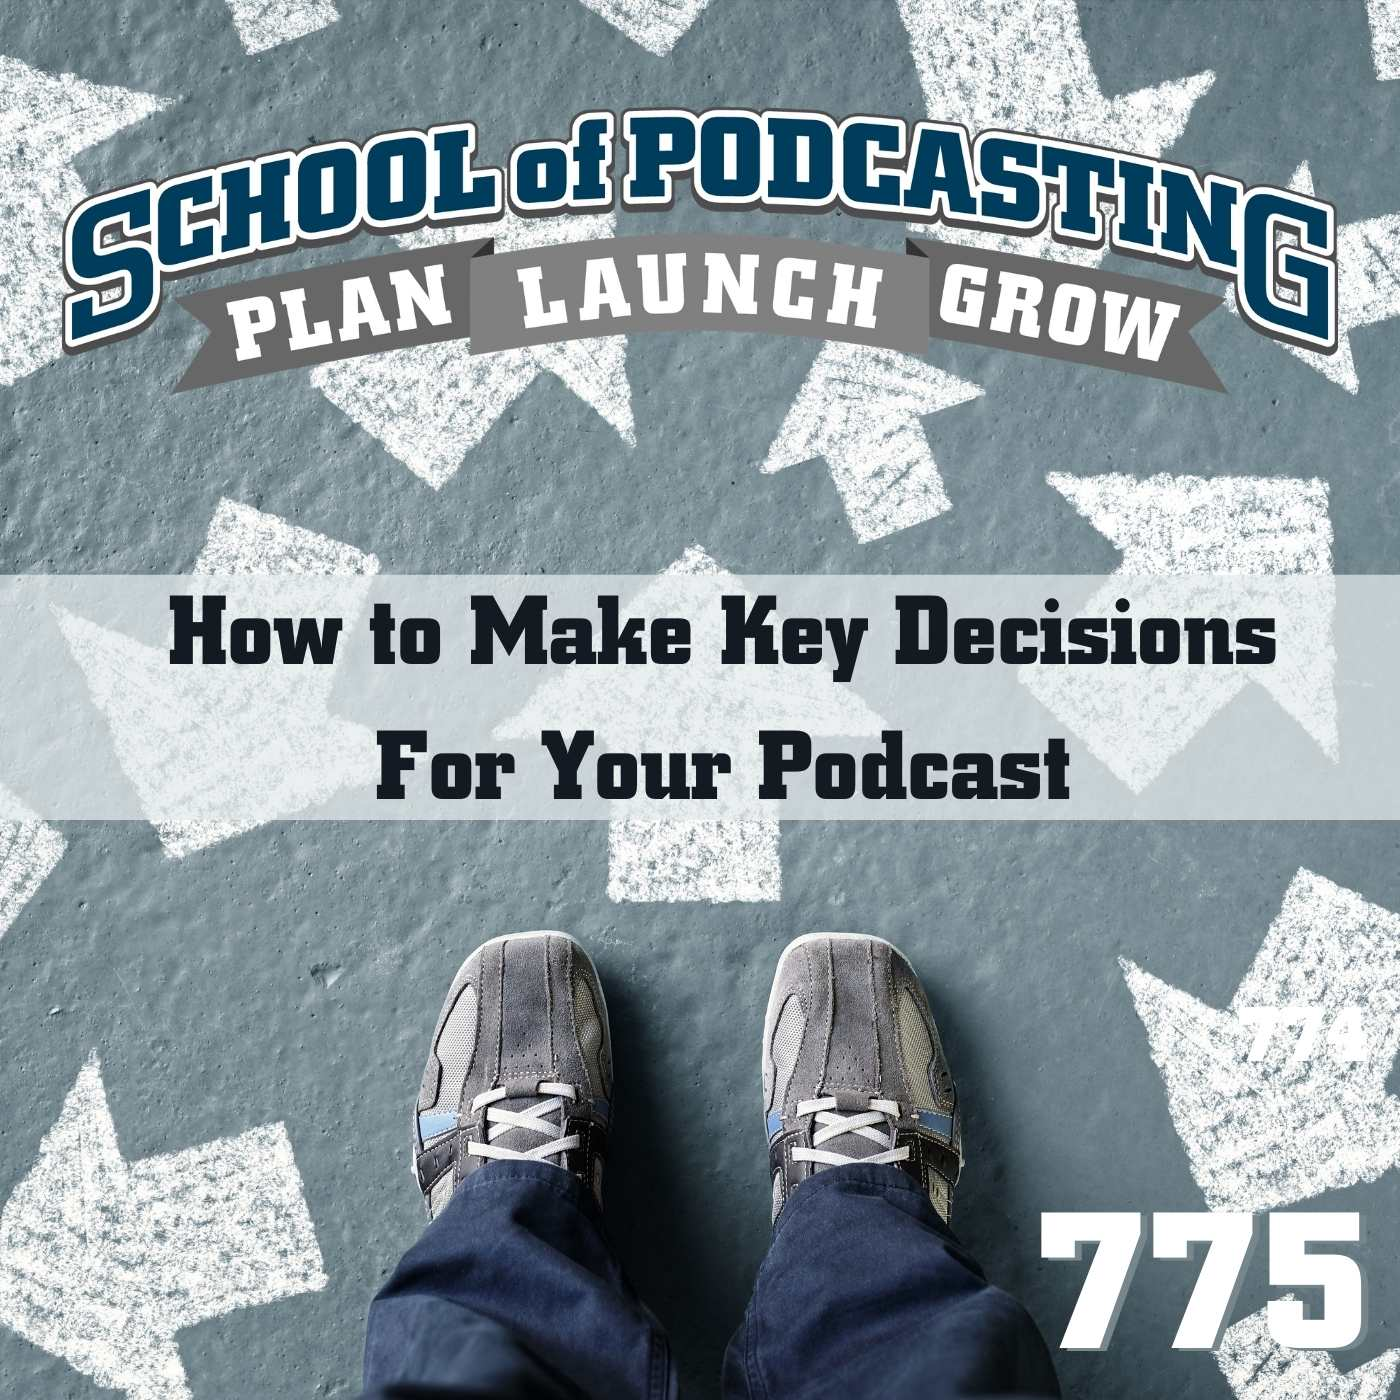 How to Make Key Decisions For Your Podcast